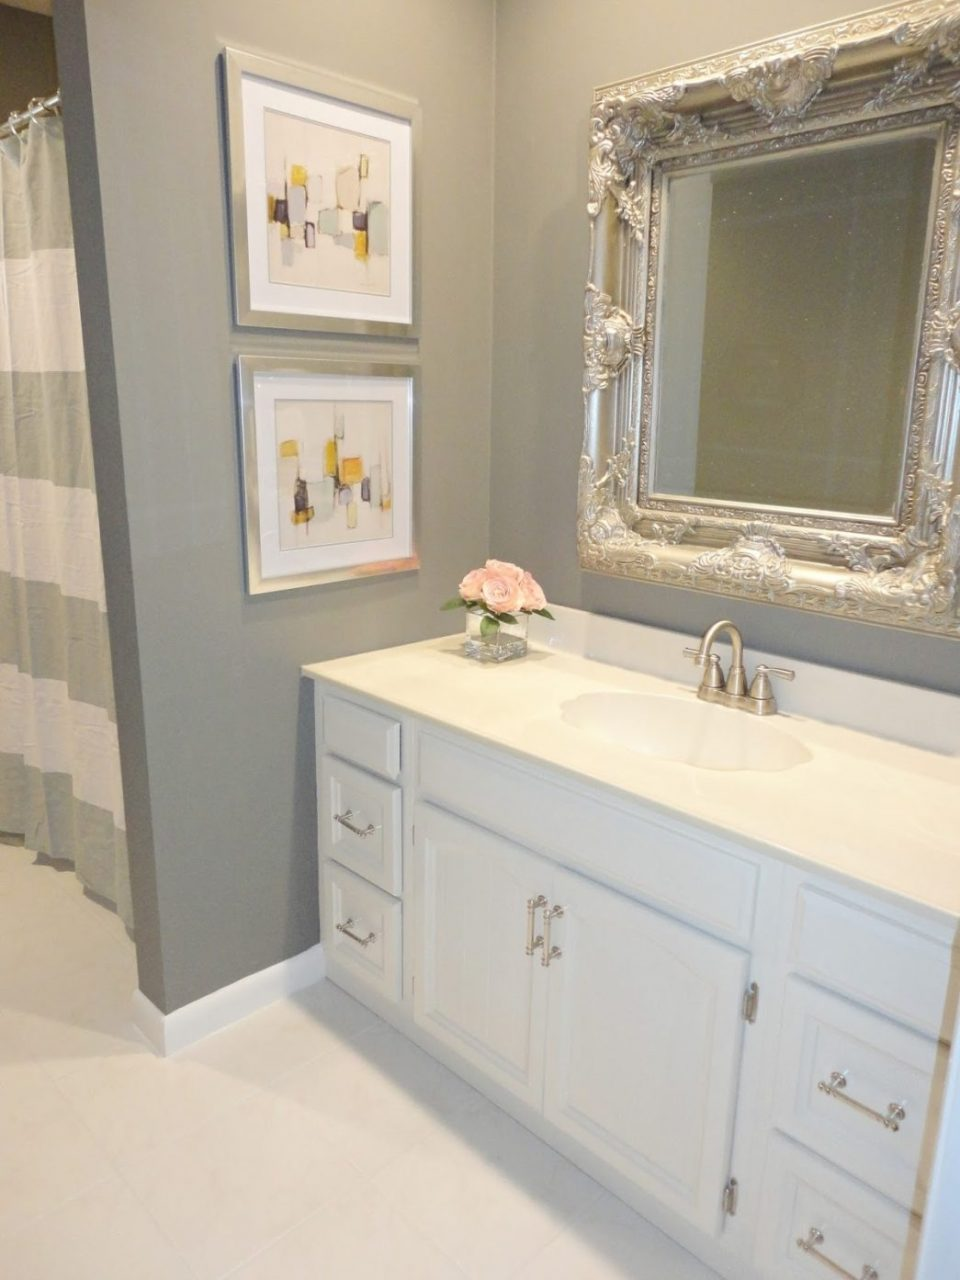 Diy Bathrooms Budget Bath Remodel Small Bathroom Renovation